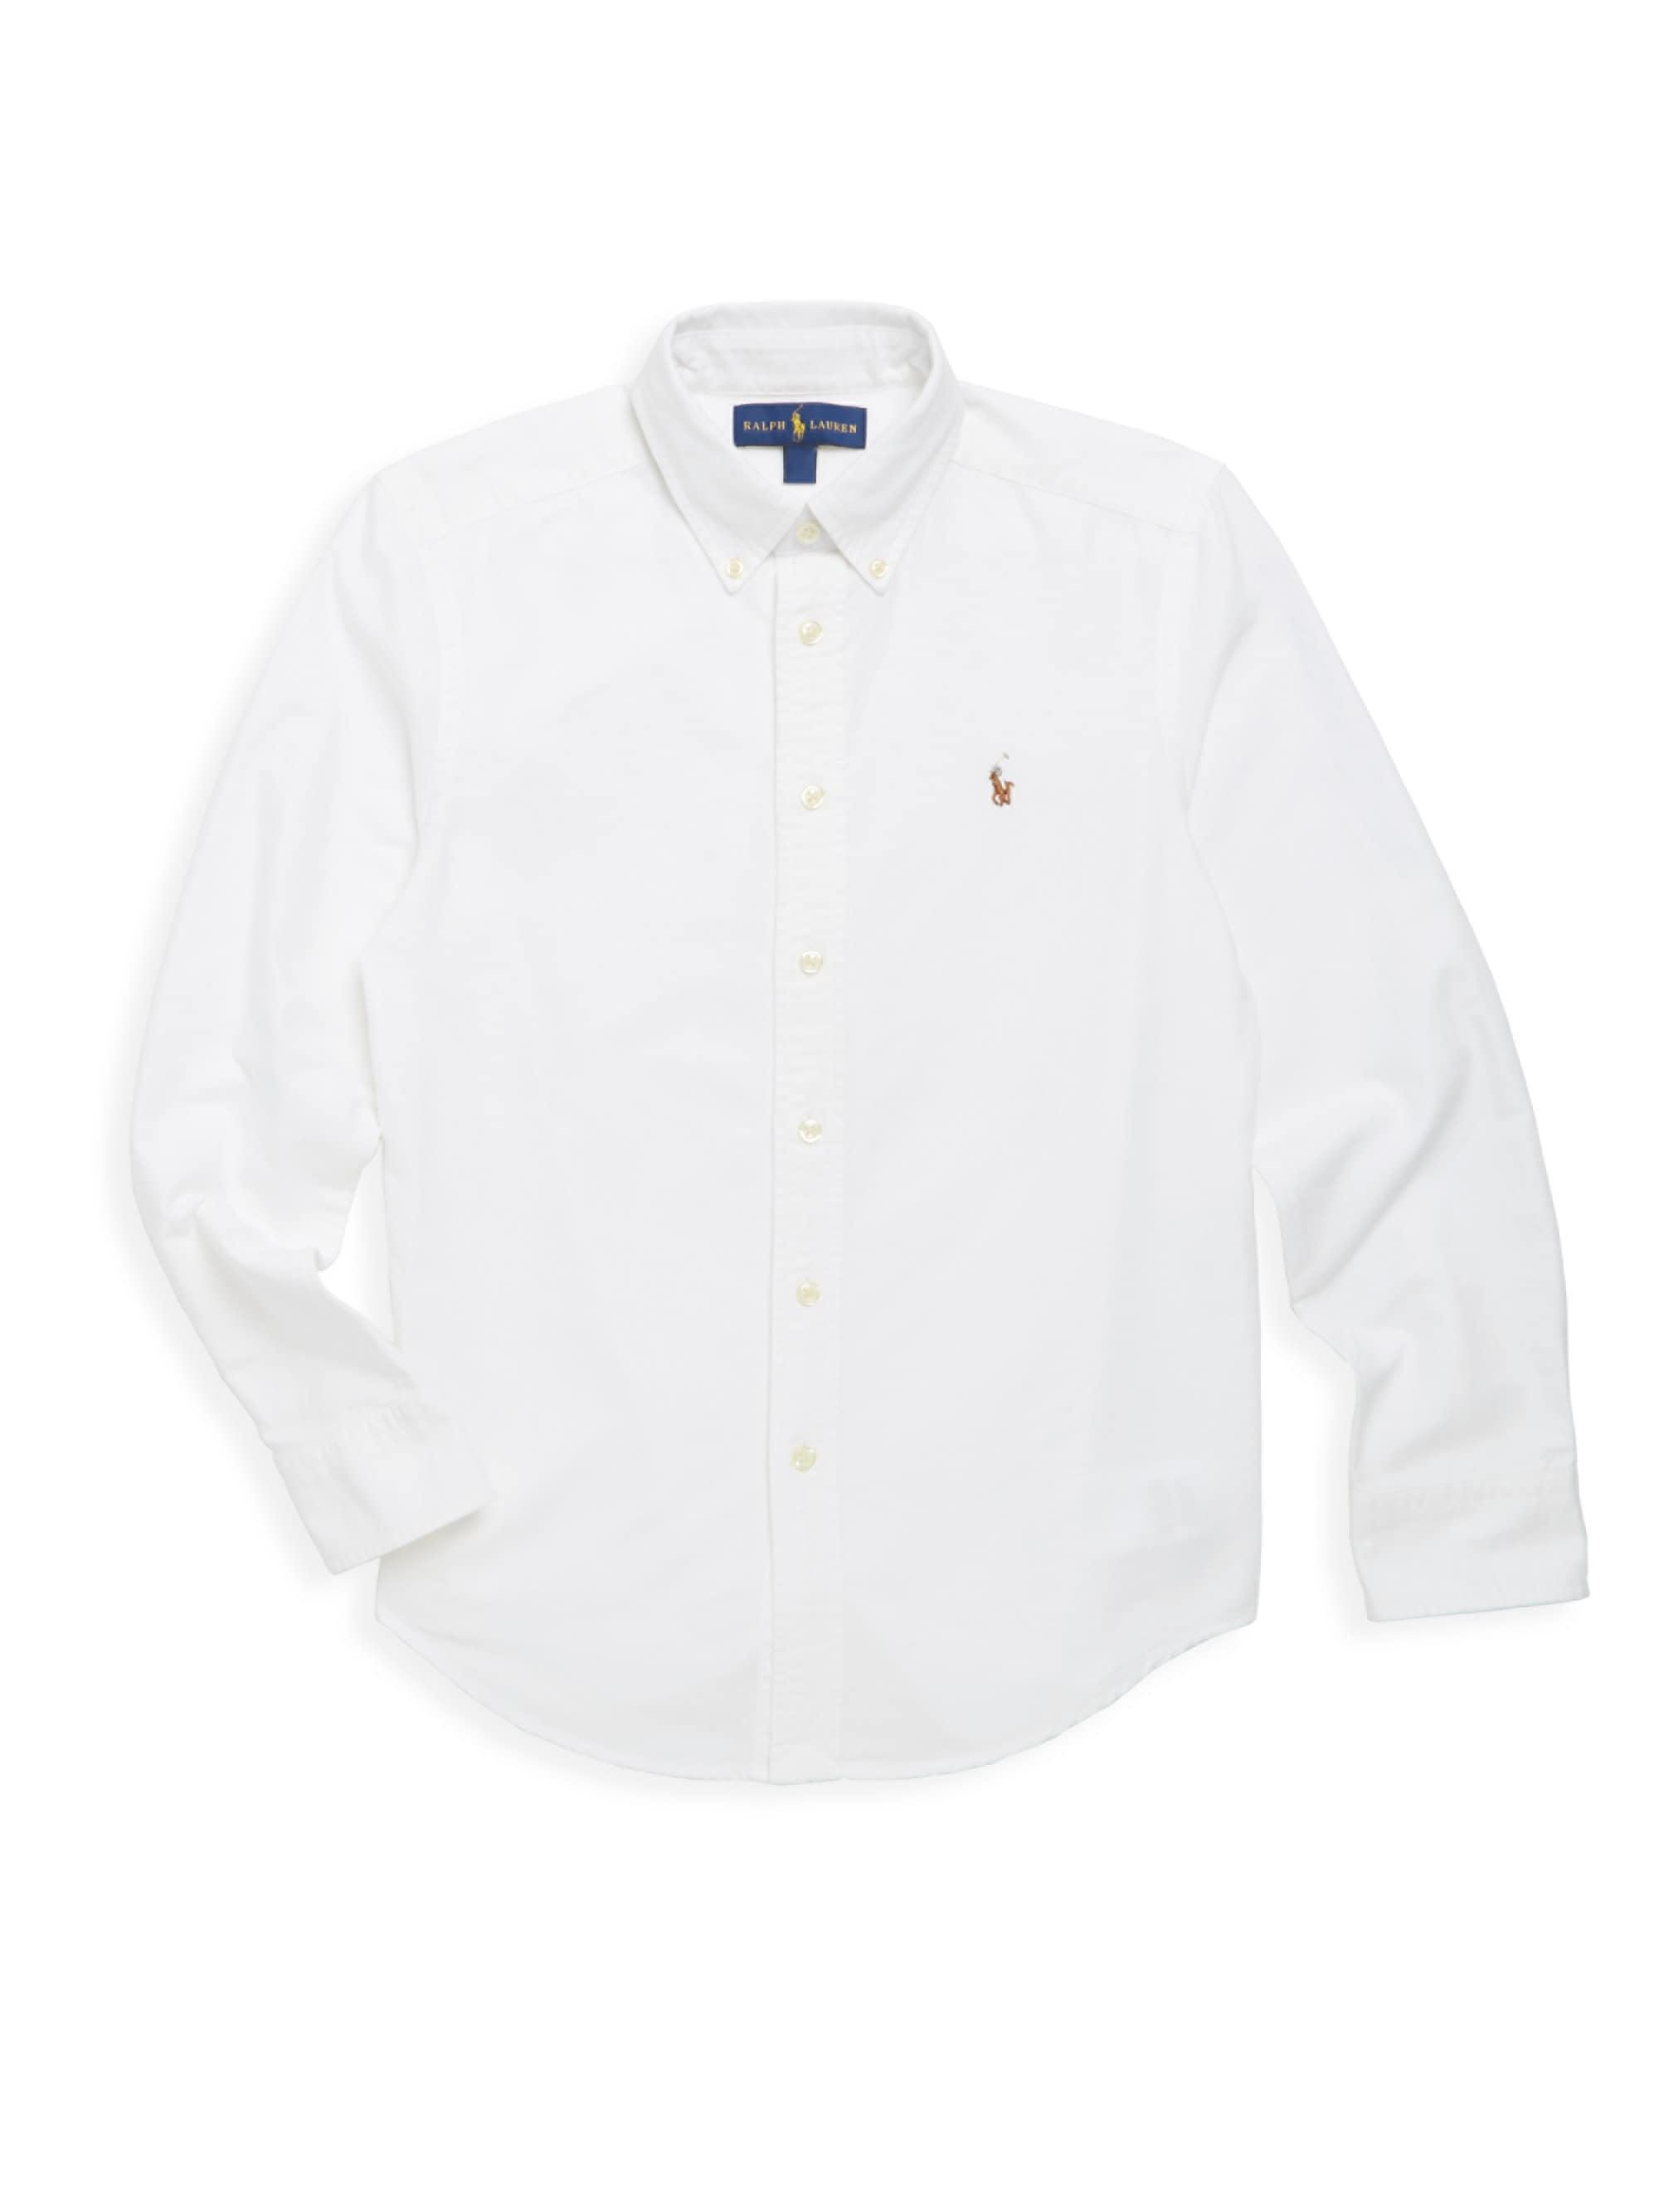 5eb7ab4b6 Lyst - Ralph Lauren Little Boy s   Boy s Oxford Cotton Button-down ...